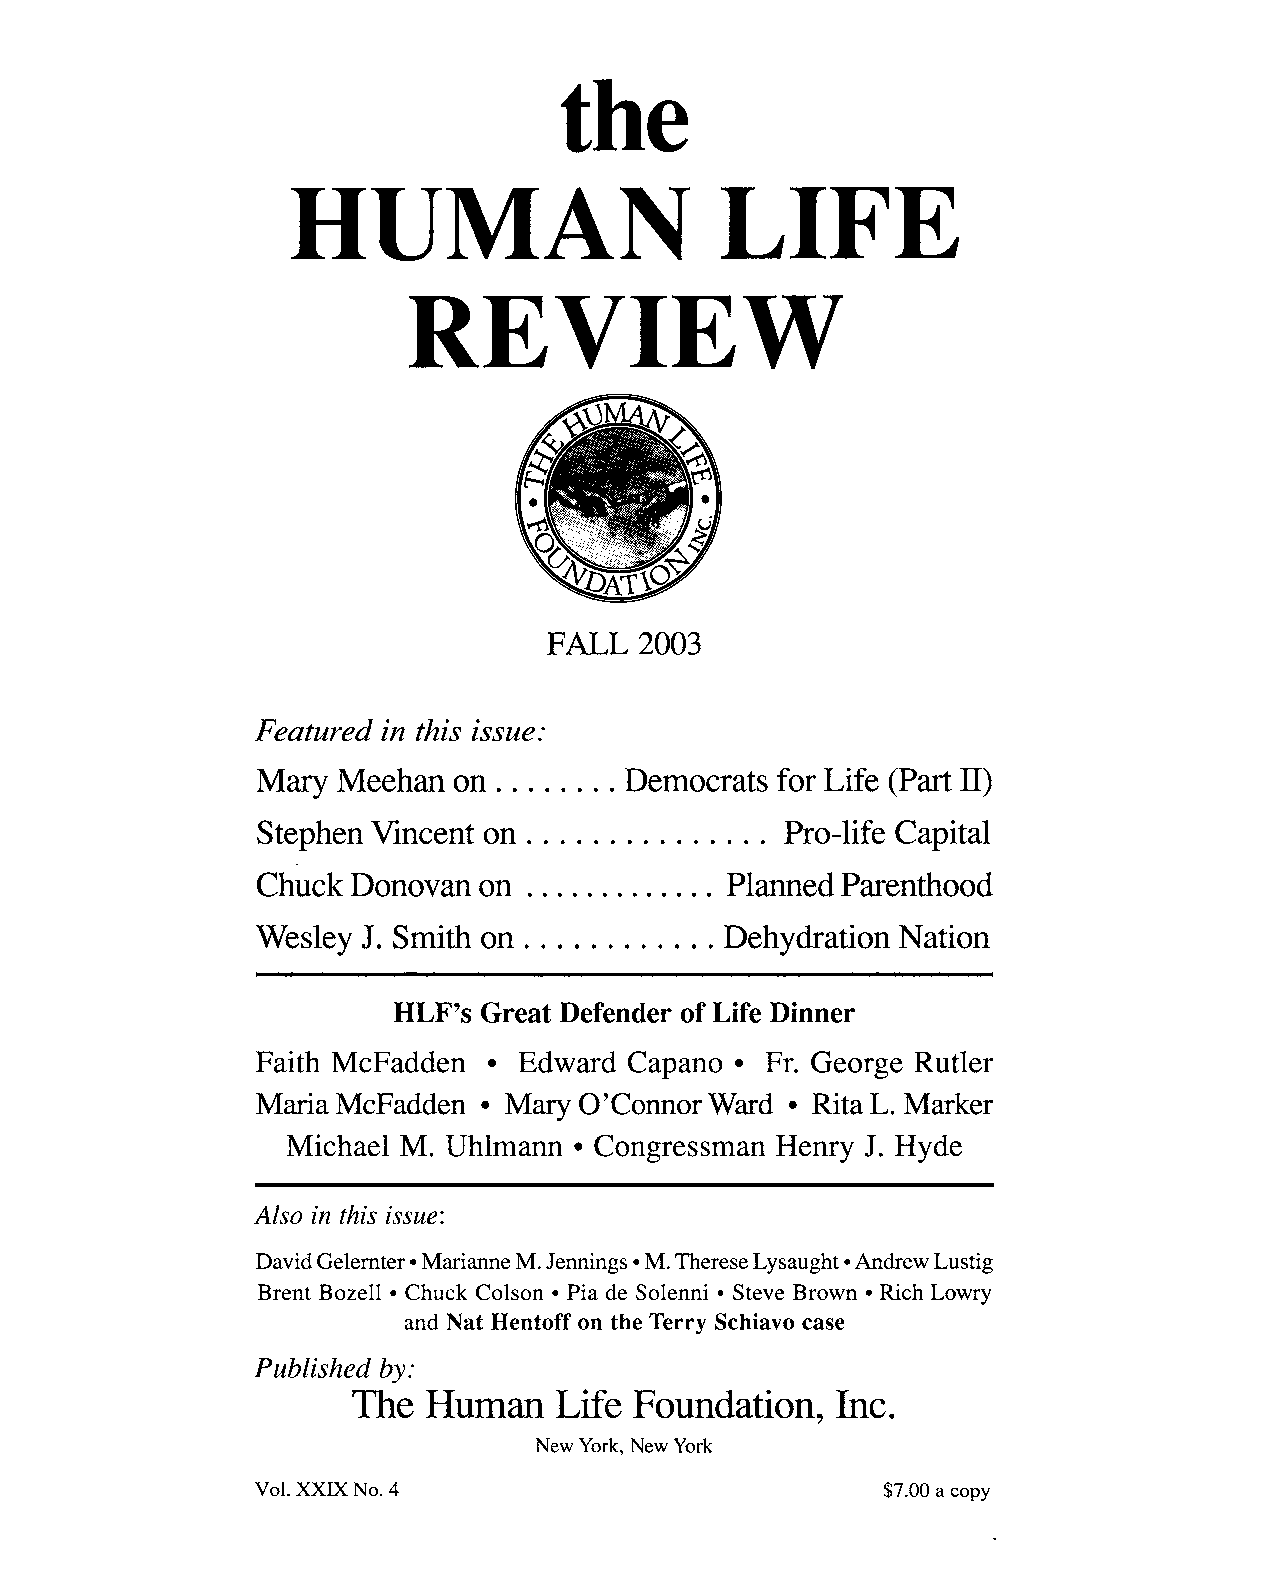 Lowery Giftedness Doesnt Discriminate >> The Human Life Review Fall 2003 The Human Life Review